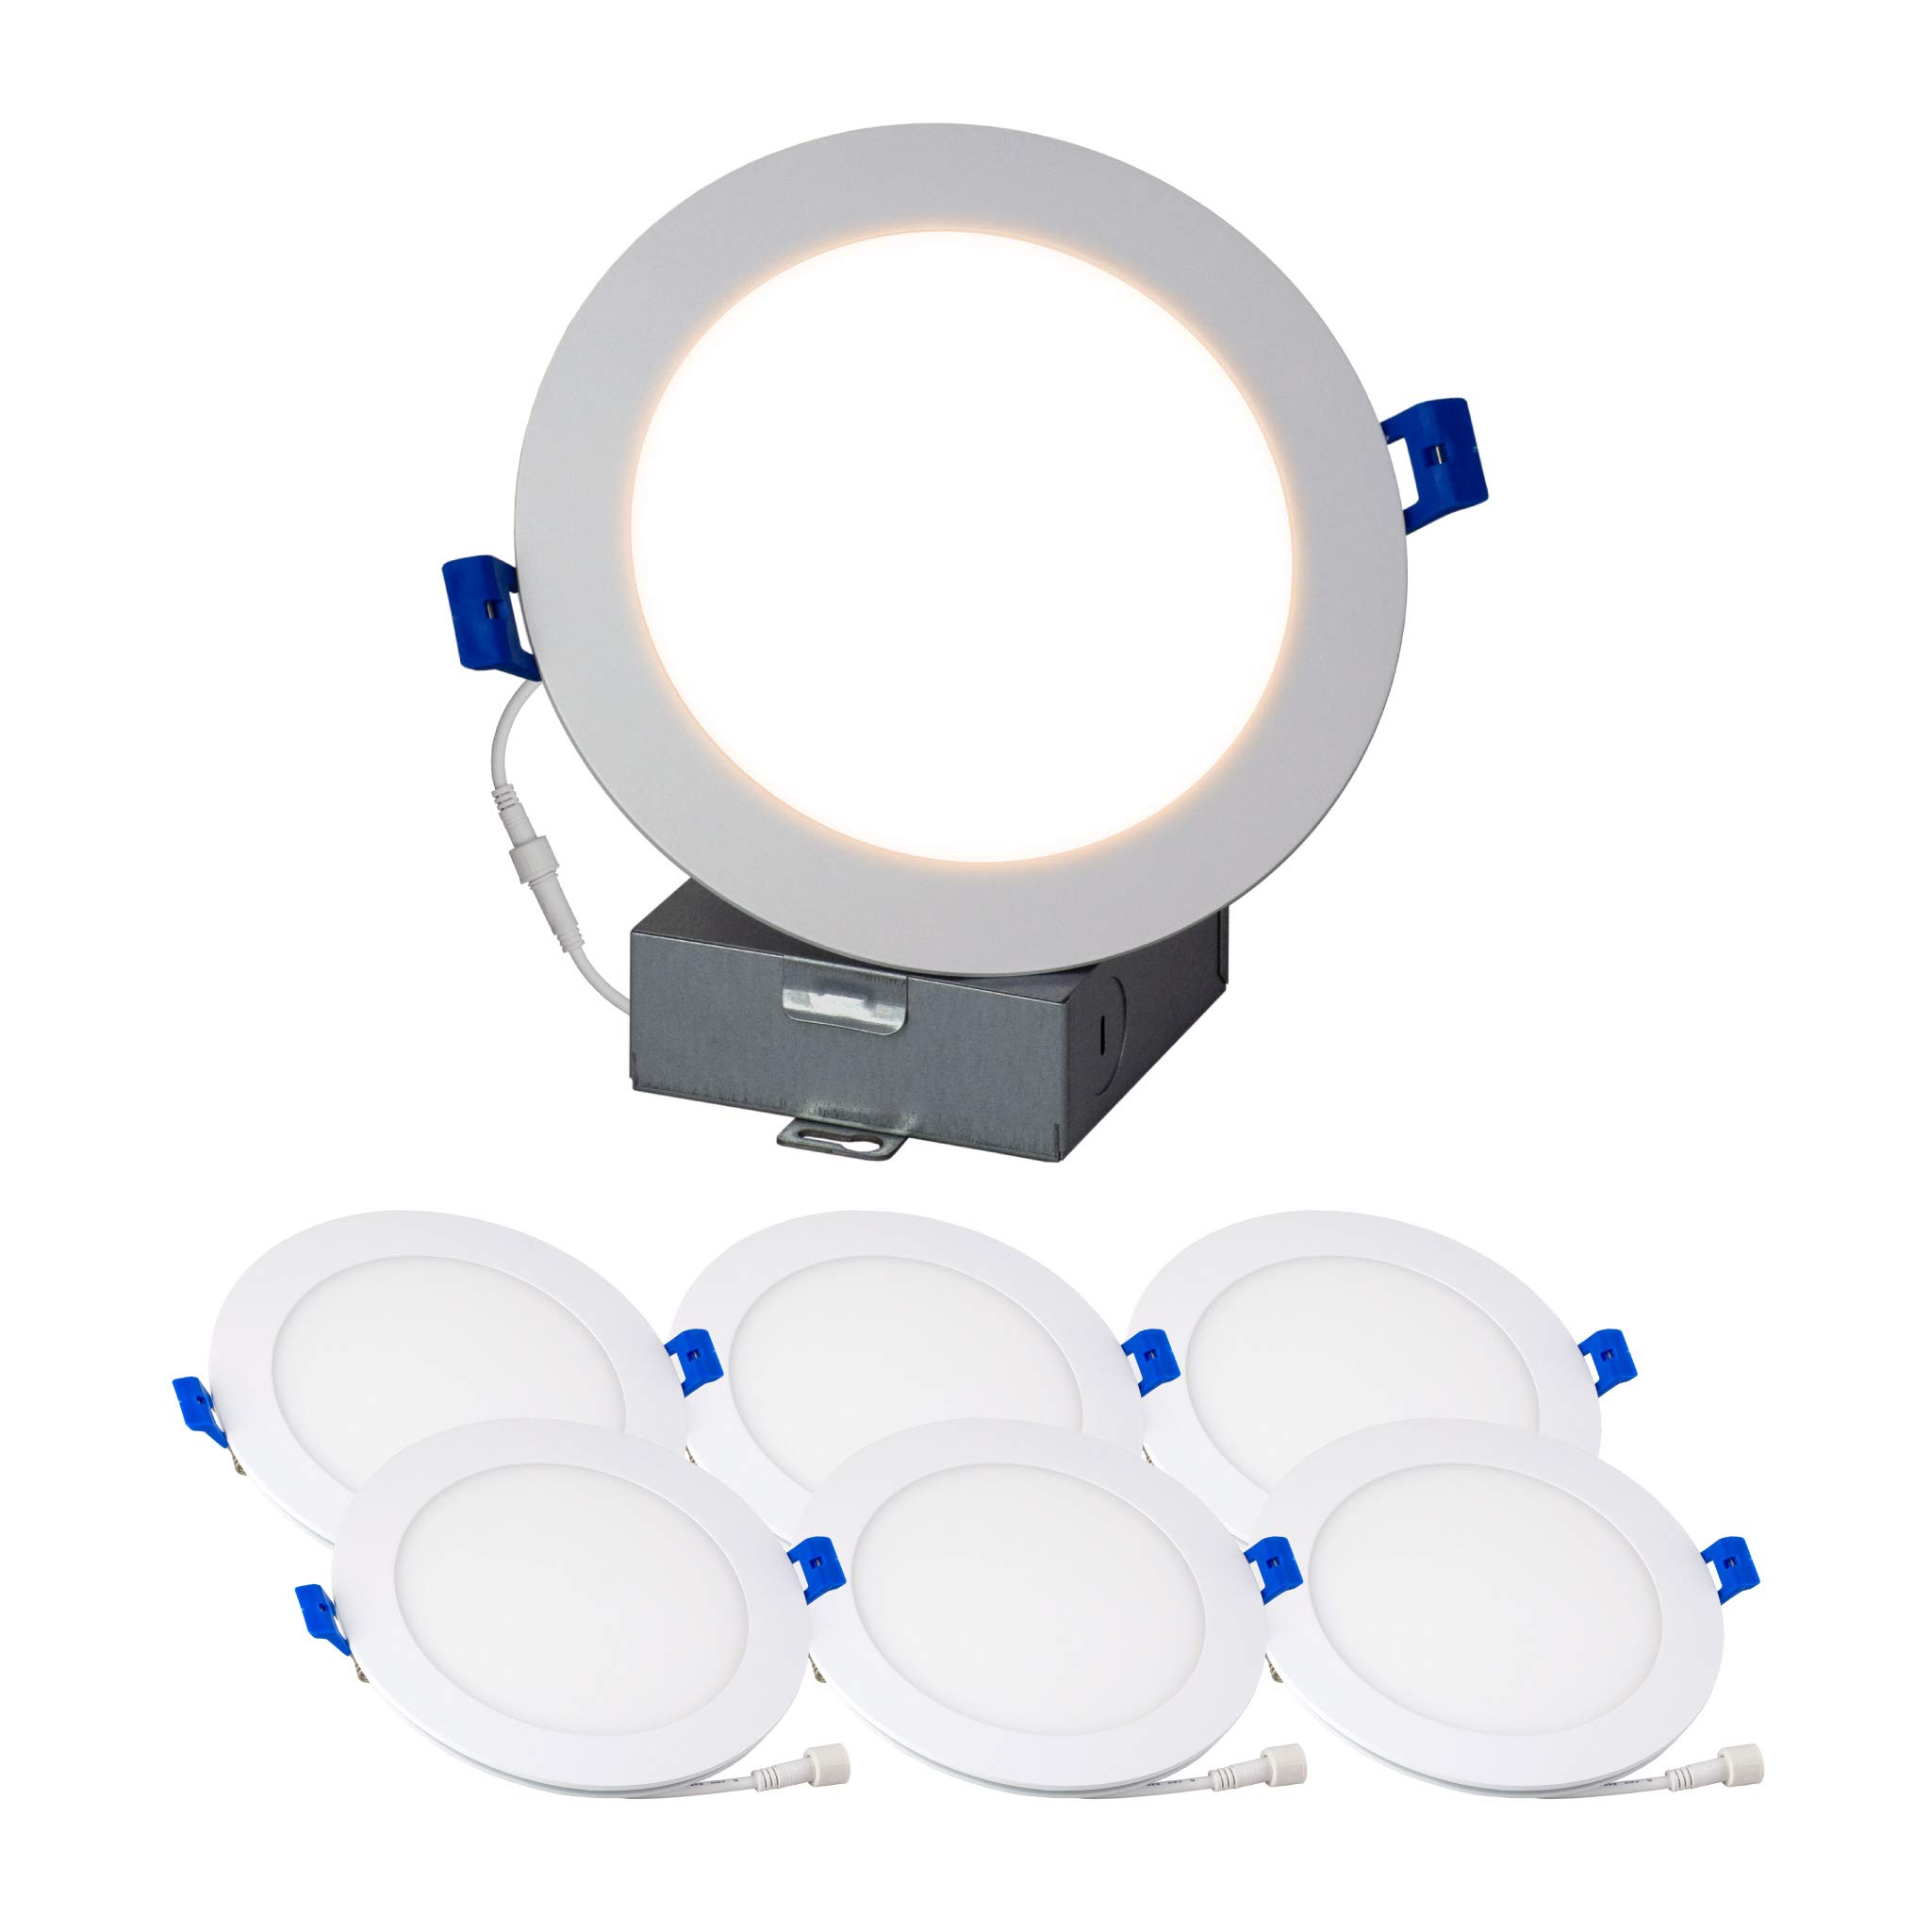 6'' Slim Recessed Panel Ceiling Downlight Ultra Thin Wafer with Junction Box; 14W=50W Equivalent; 3-in-1 CCT: 3000k/4000k/5000k, 950 lumens, 120V, Dimmable, IC Rated, ETL/ES/JA8 (6Pack)